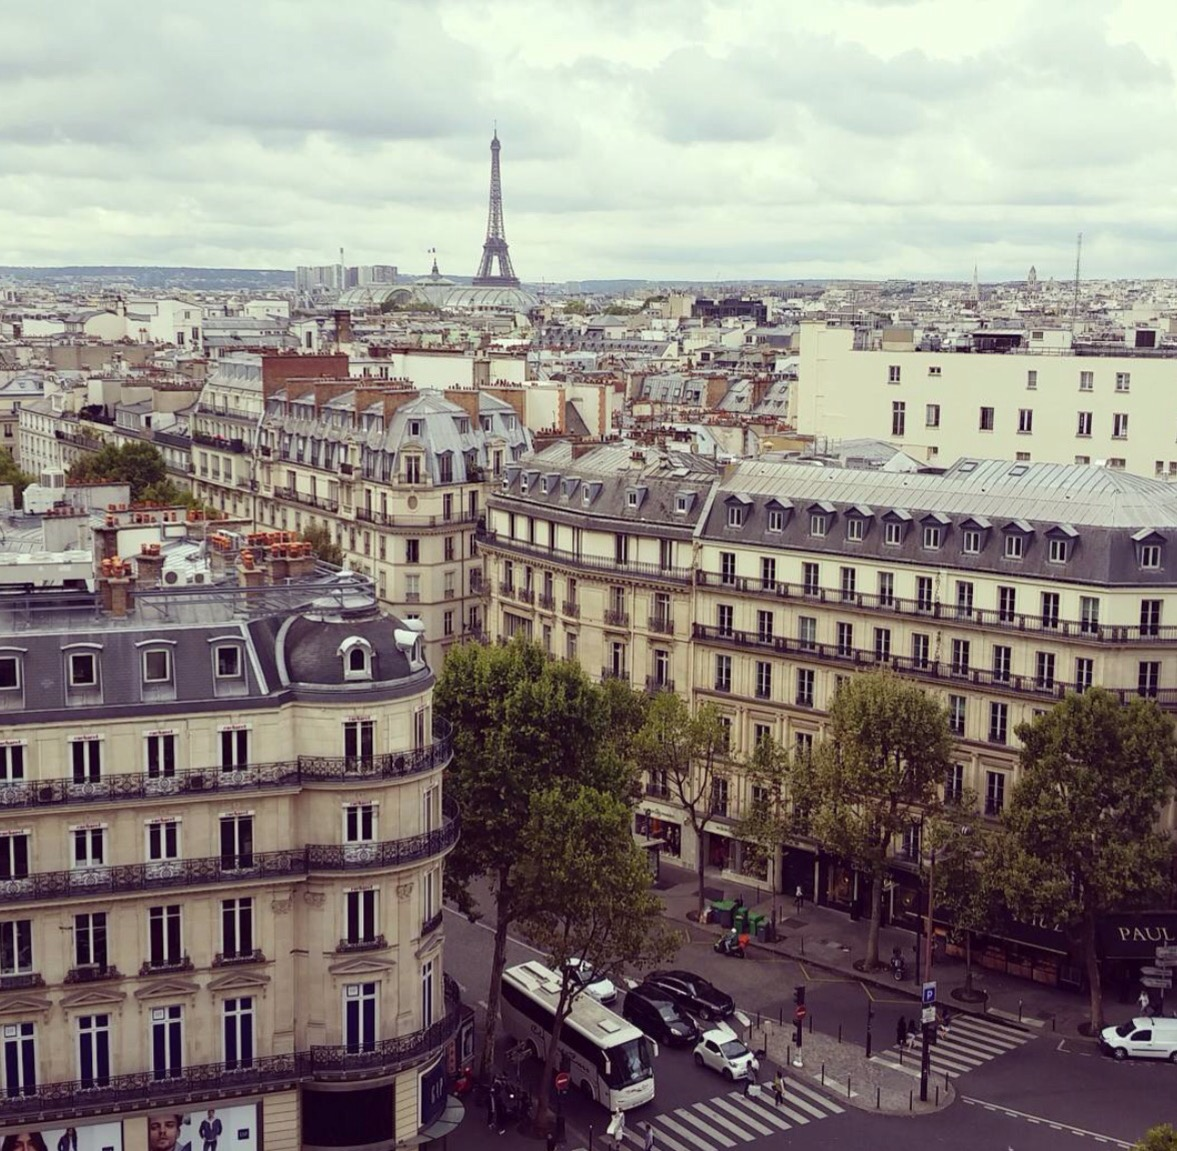 thecardiffcwtch - Paris through Instagram